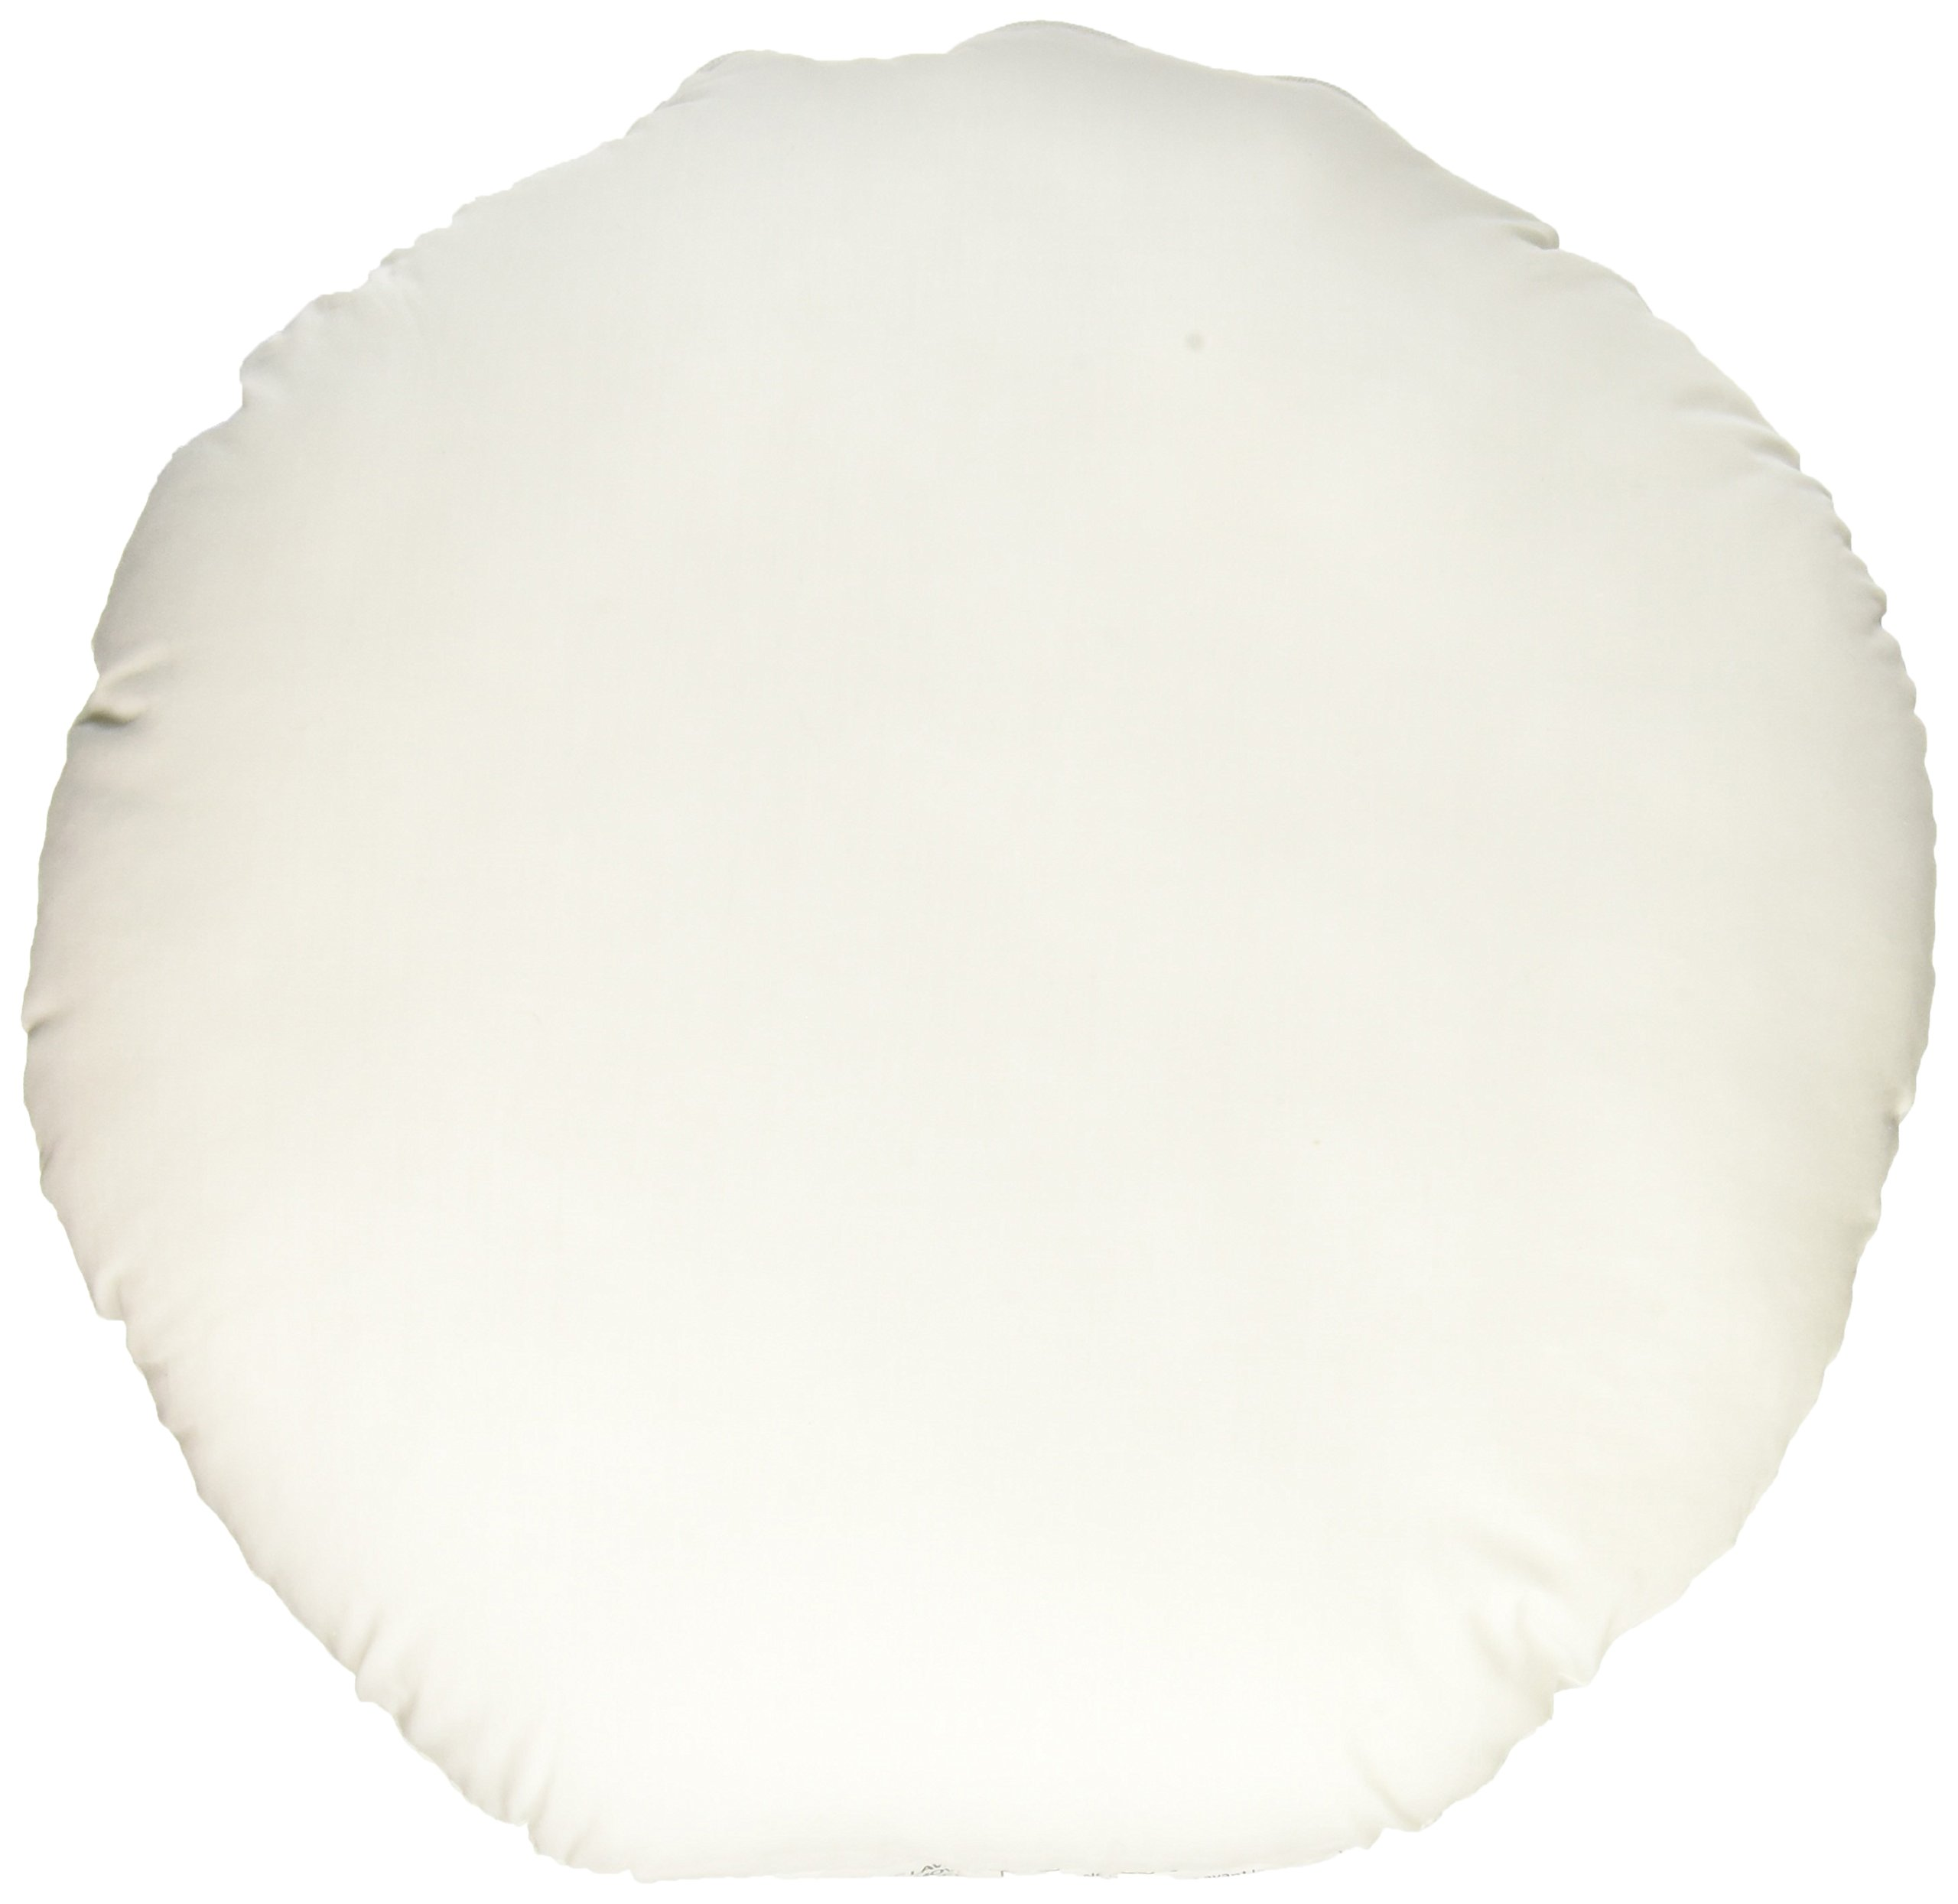 Fairfield Soft Touch Round Pillow, 16-Inch by Fairfield